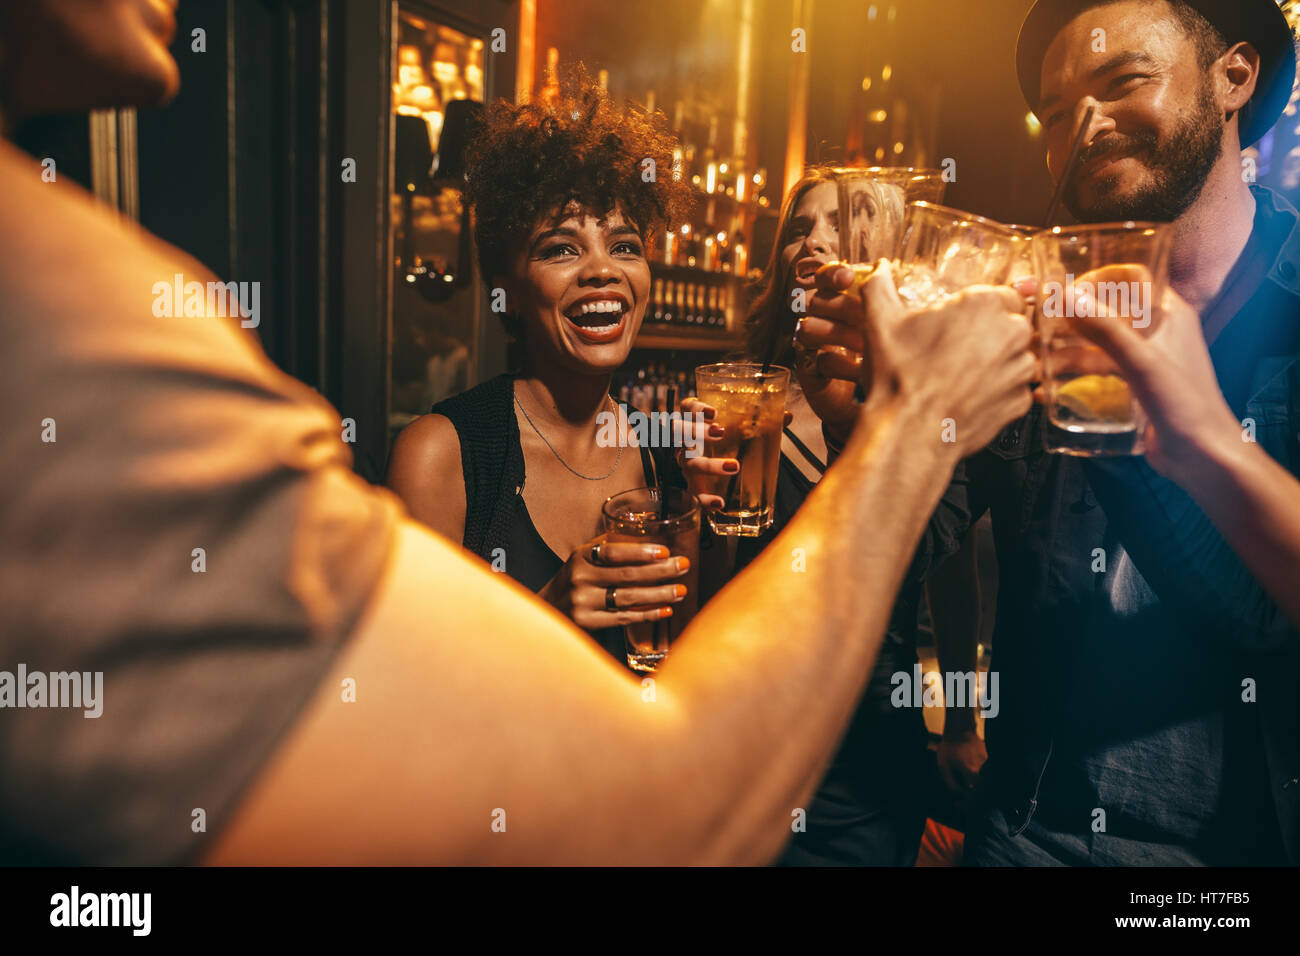 Group of young people toasting drinks at nightclub. Young men and women having fun at lounge bar. - Stock Image